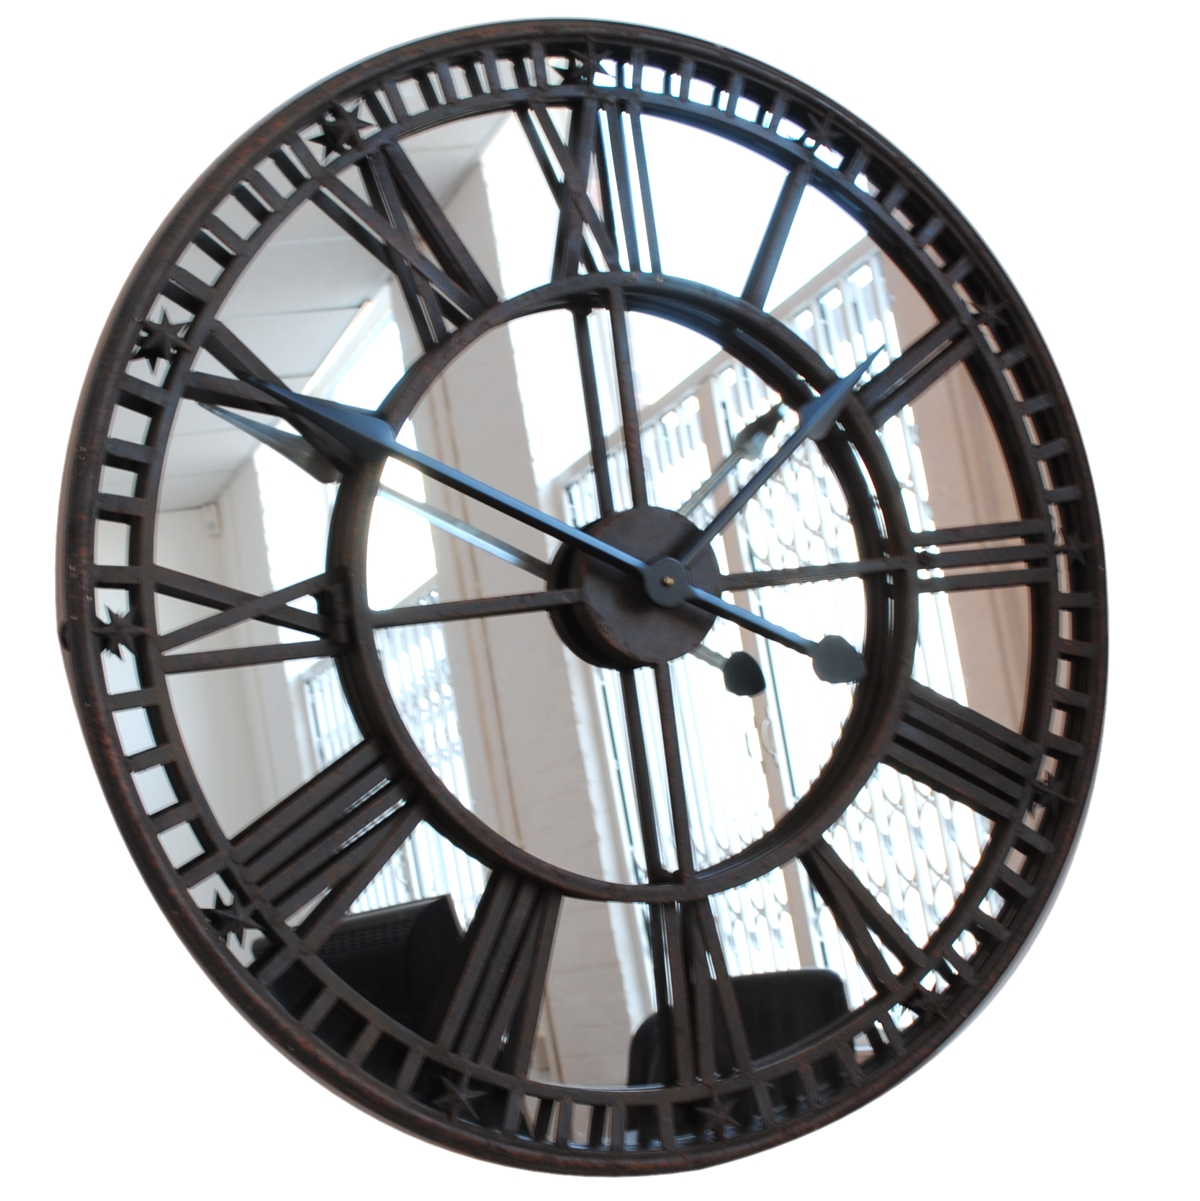 Metal Skeleton Vintage Wall Clocks Uk